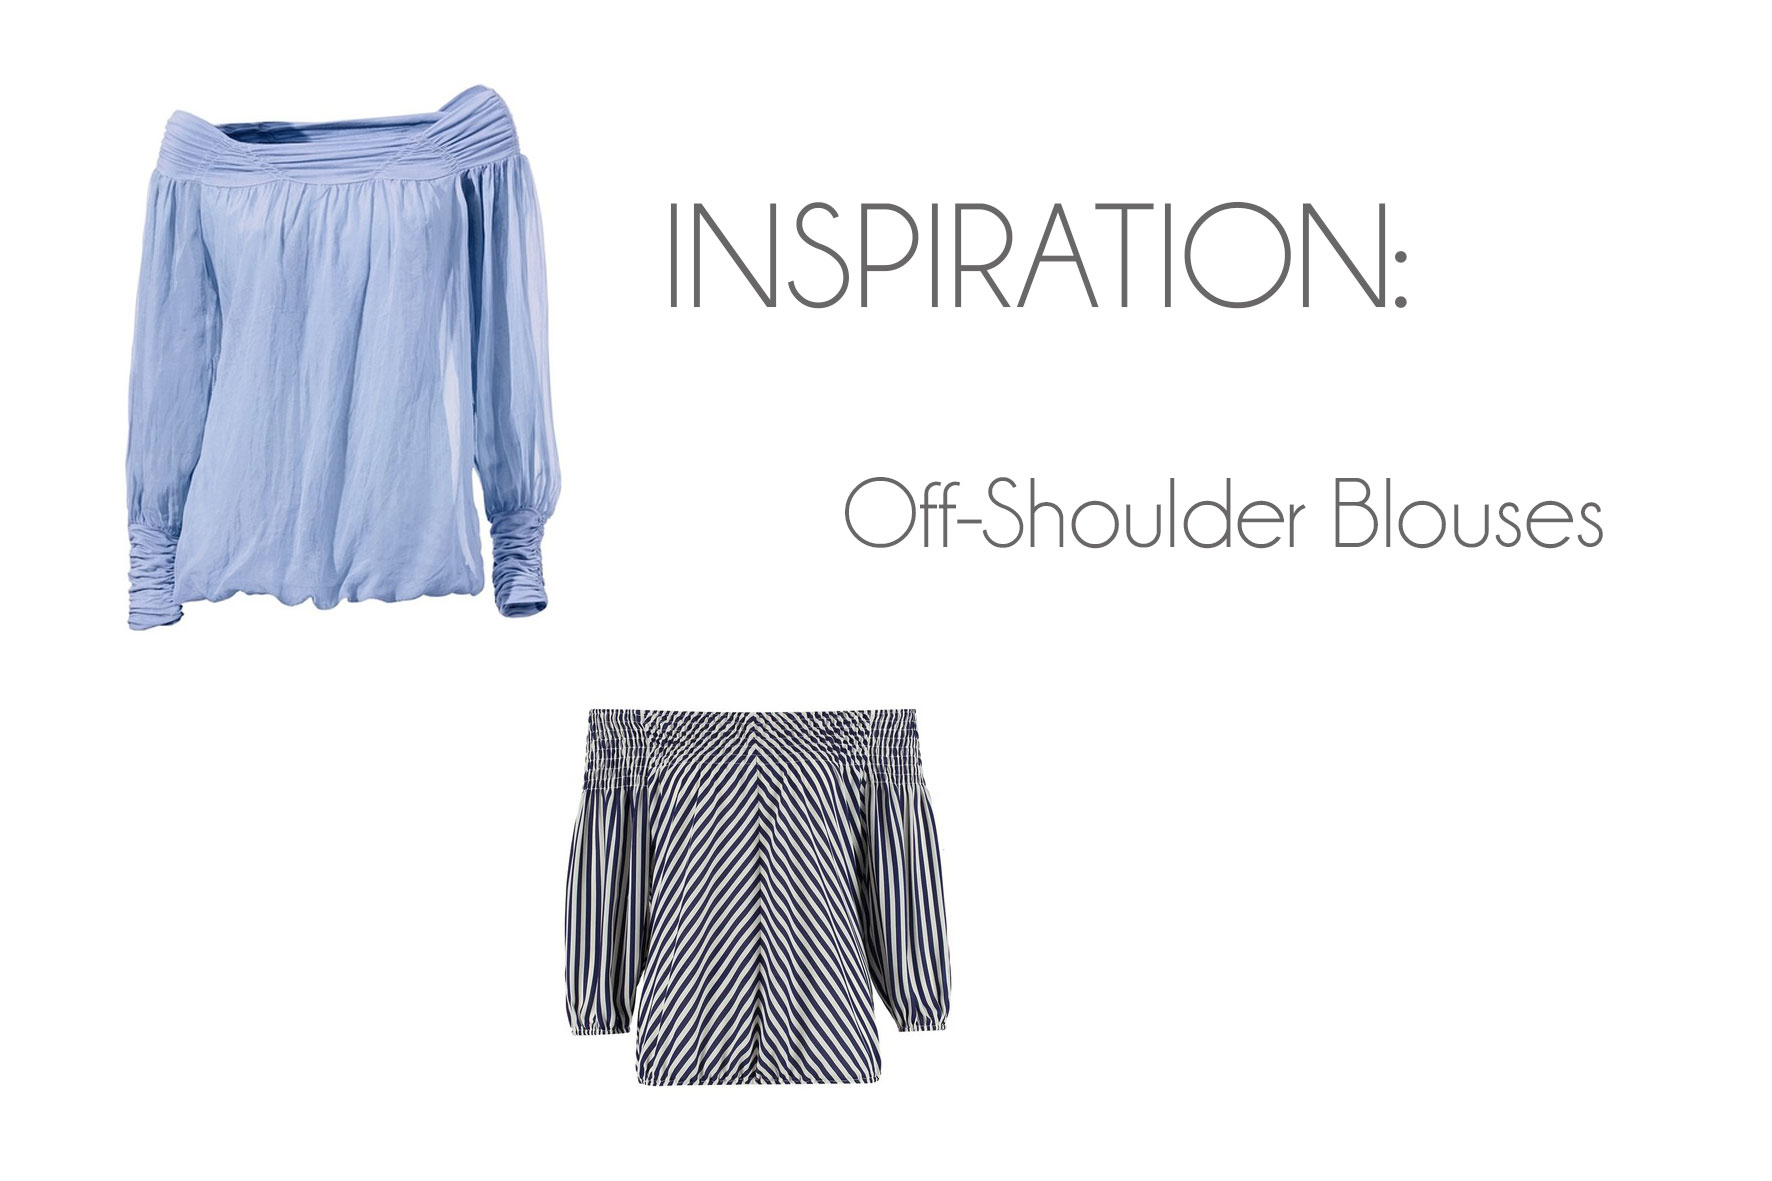 Inspiration: Off-Shoulder Blouses